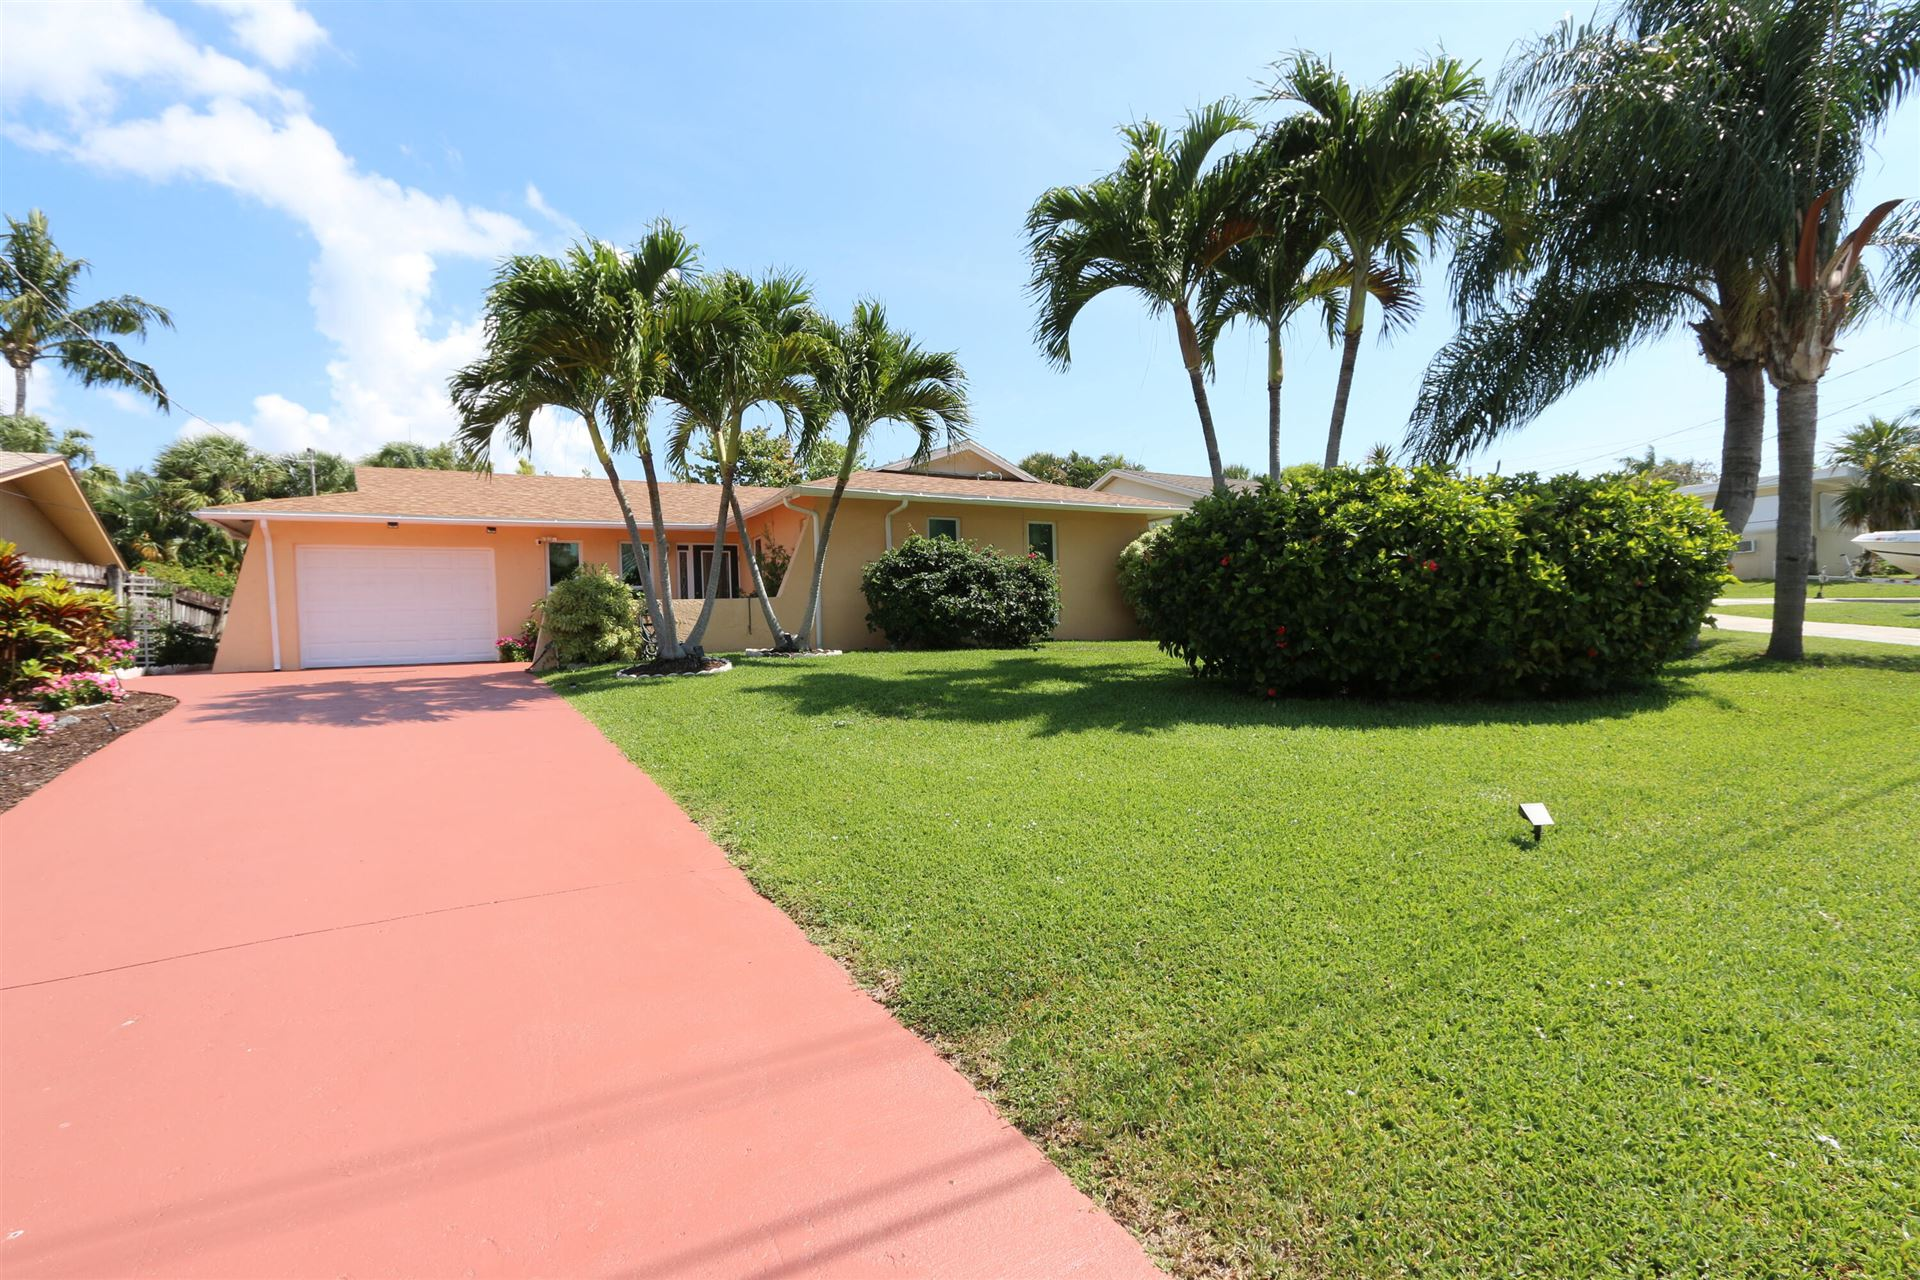 Photo of 2043 N Waterway Drive, North Palm Beach, FL 33408 (MLS # RX-10714459)